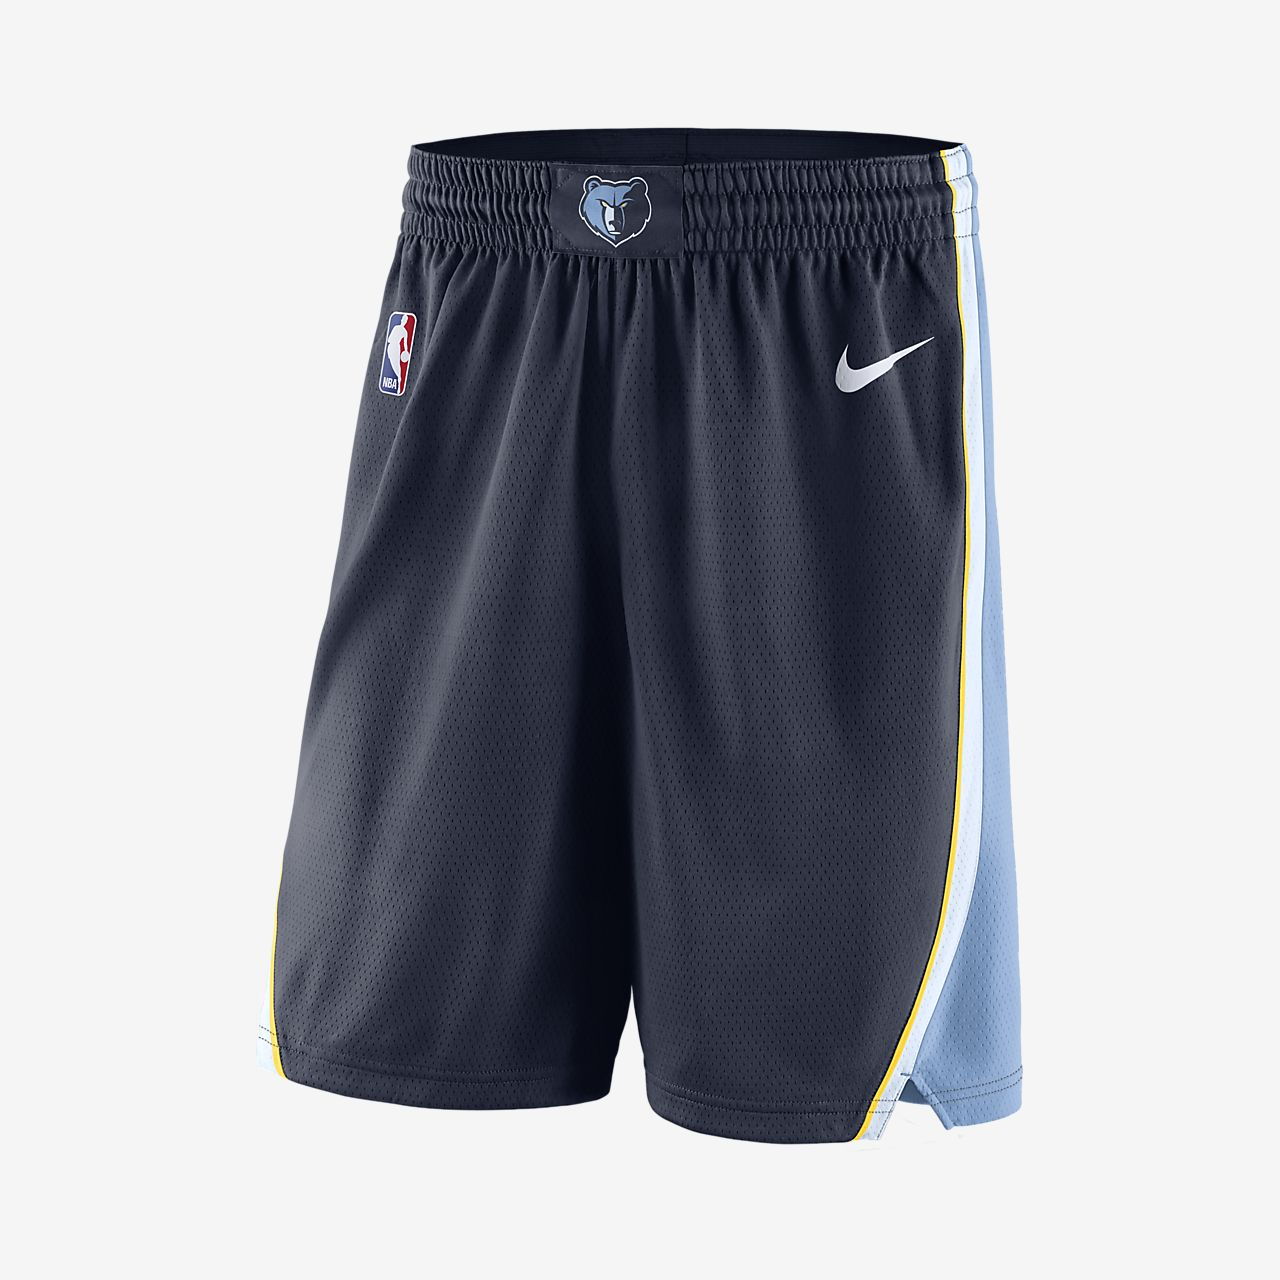 Shorts Memphis Grizzlies Nike Icon Edition Swingman NBA för män